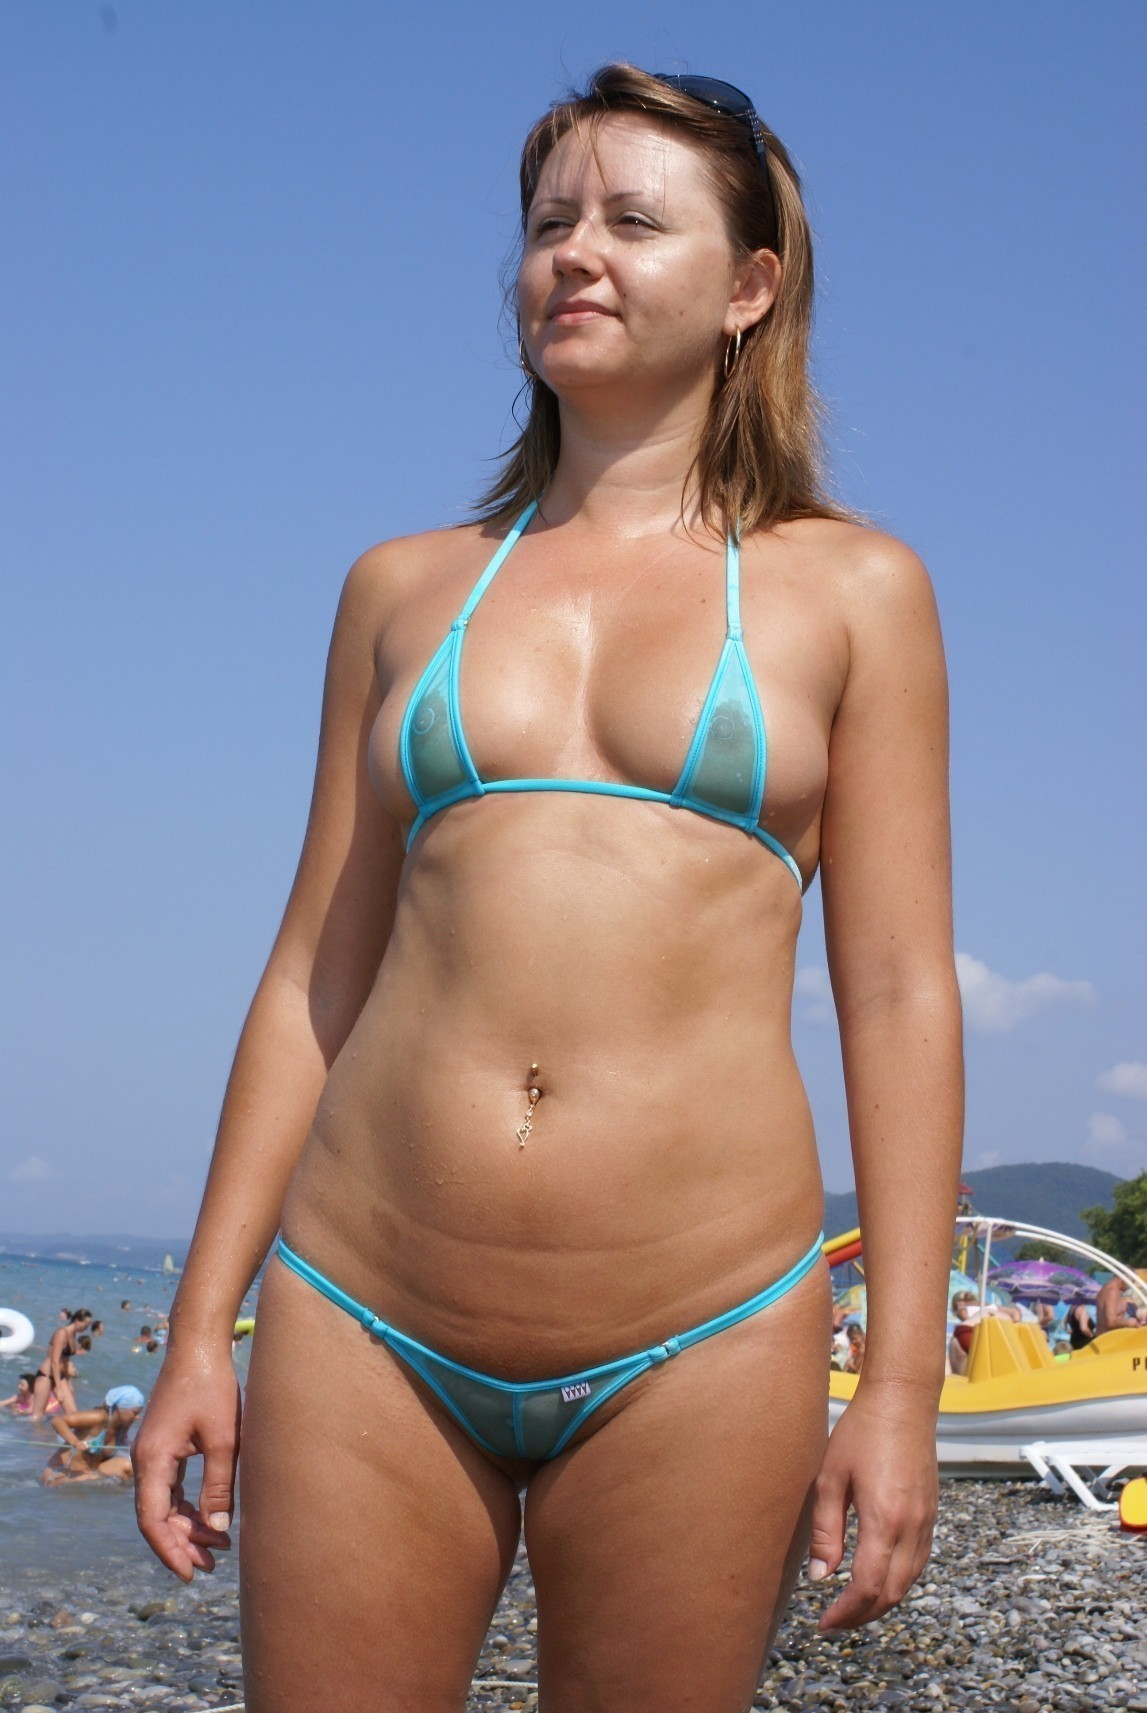 milf in see though micro bikini on a public beach